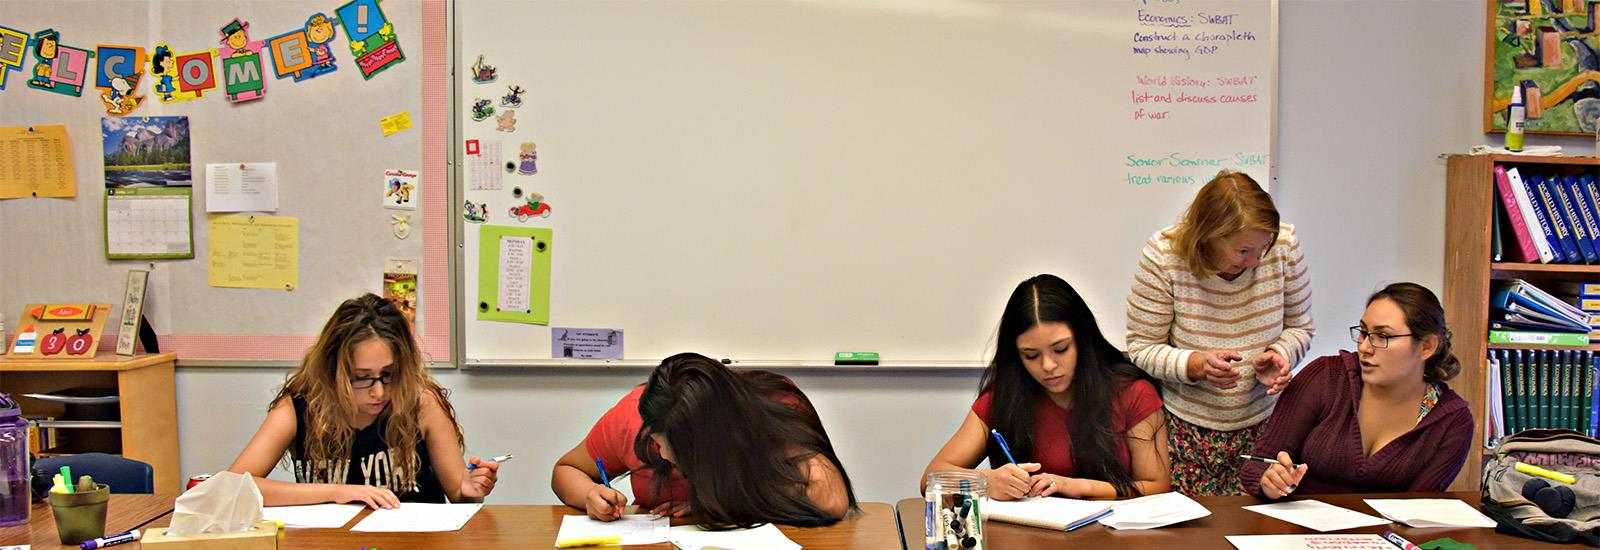 We provide all the classes needed to complete an Arizona high school diploma.